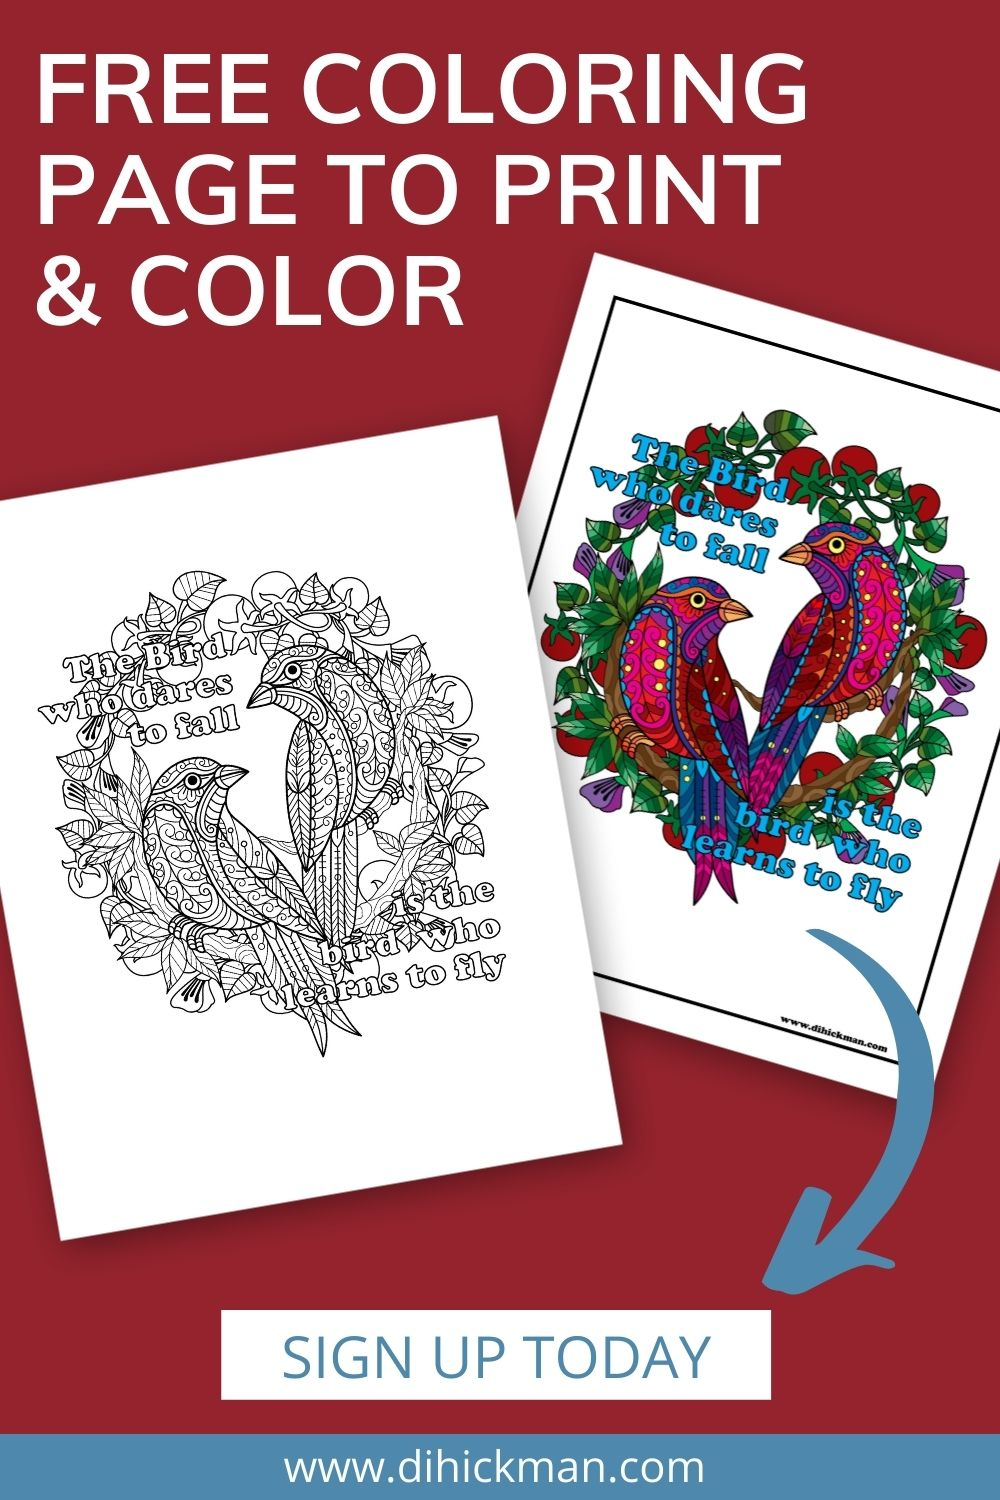 free coloring page to print and color, sign up today